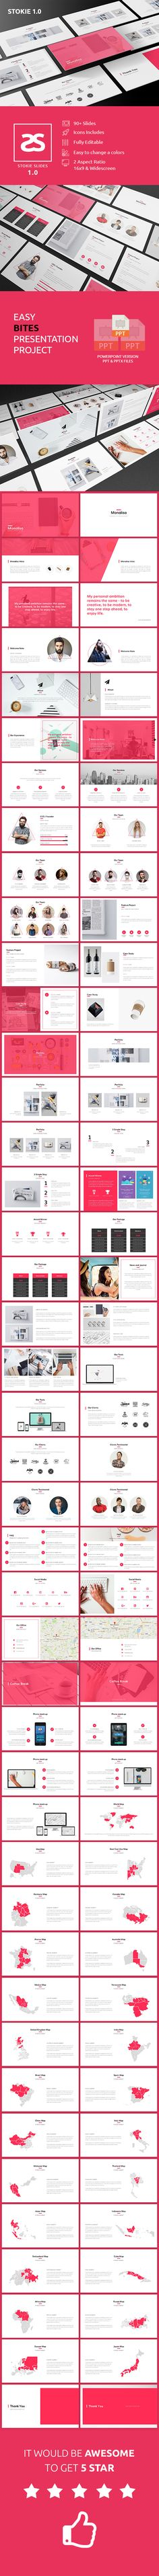 Creative #Powerpoint Template 1.0 - Creative PowerPoint Templates